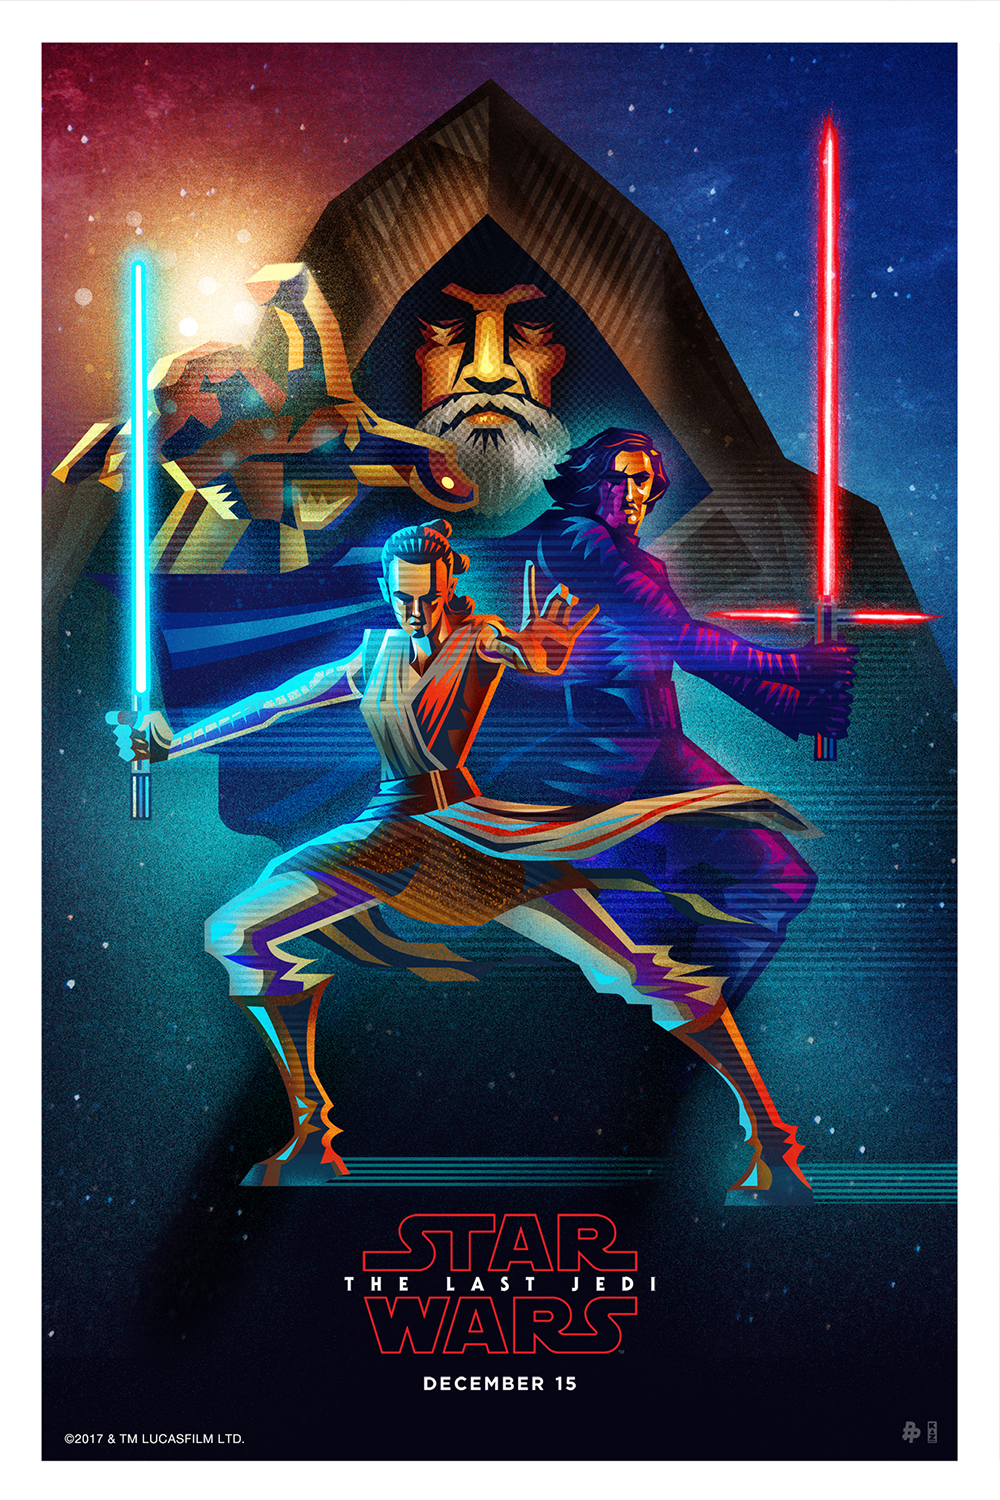 cool-collection-of-poster-art-celebrates-star-wars-the-last-jedi